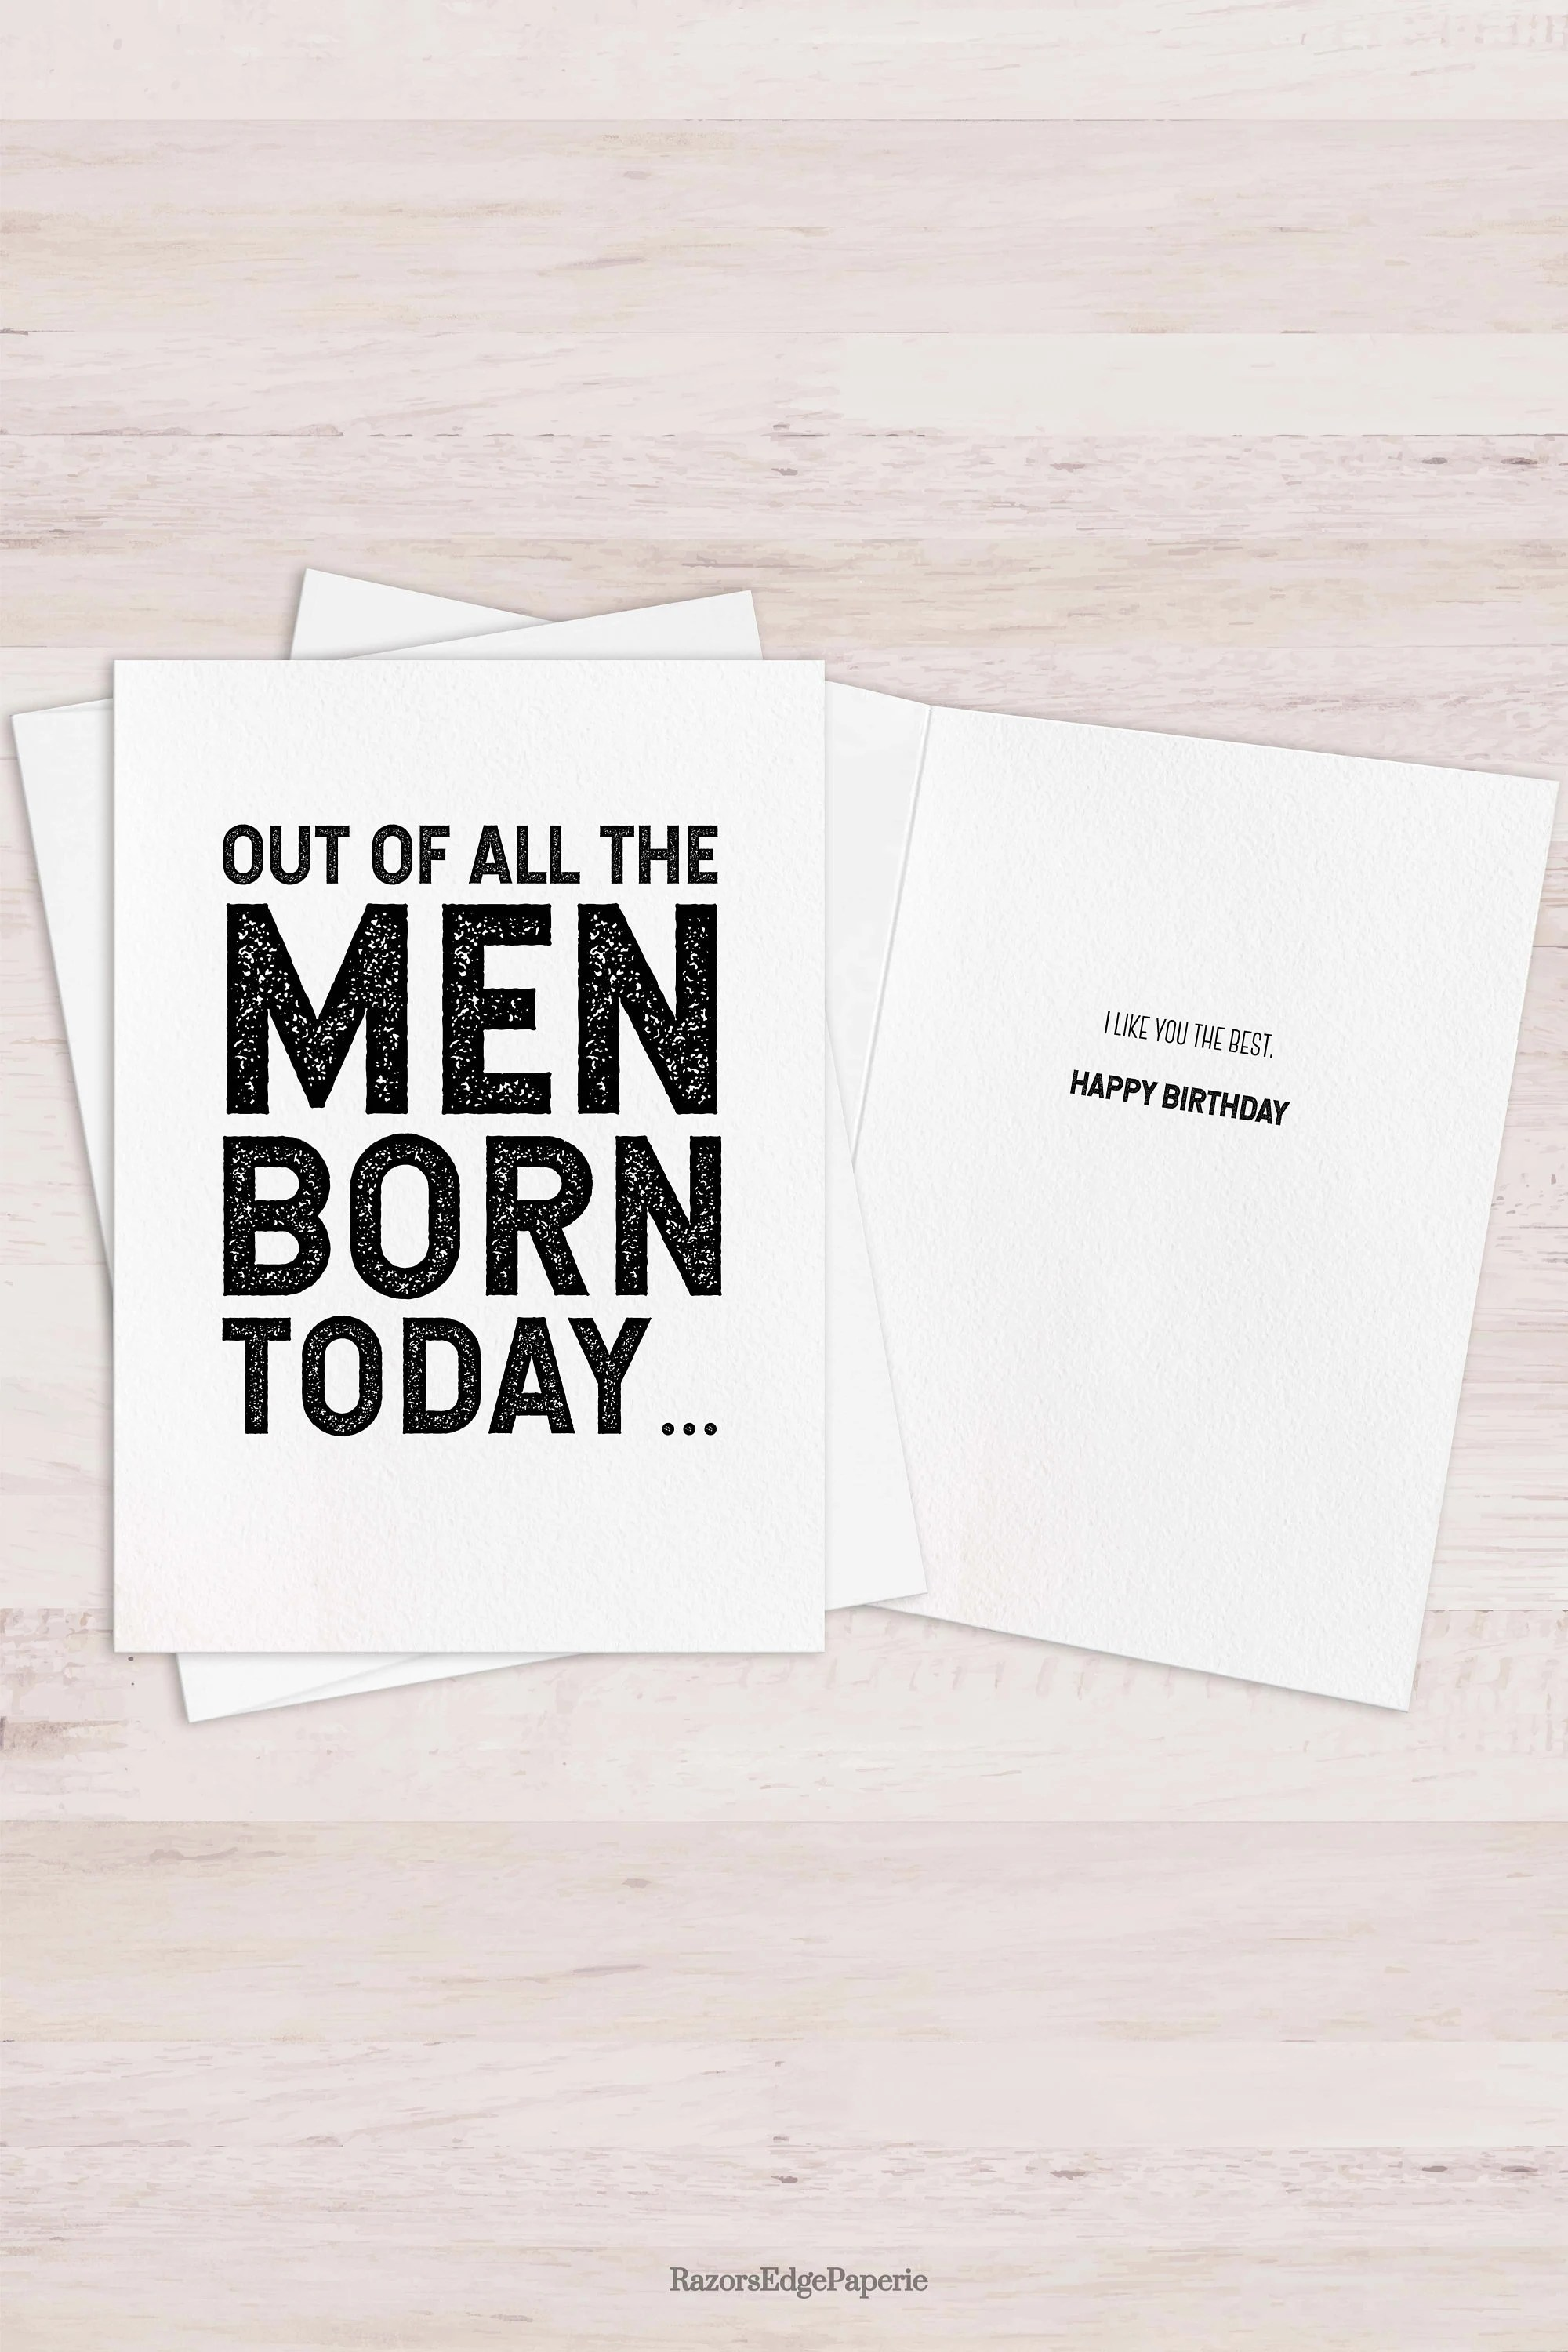 Funny Birthday Images For Men : funny, birthday, images, PRINTABLE, Funny, Birthday, Friend